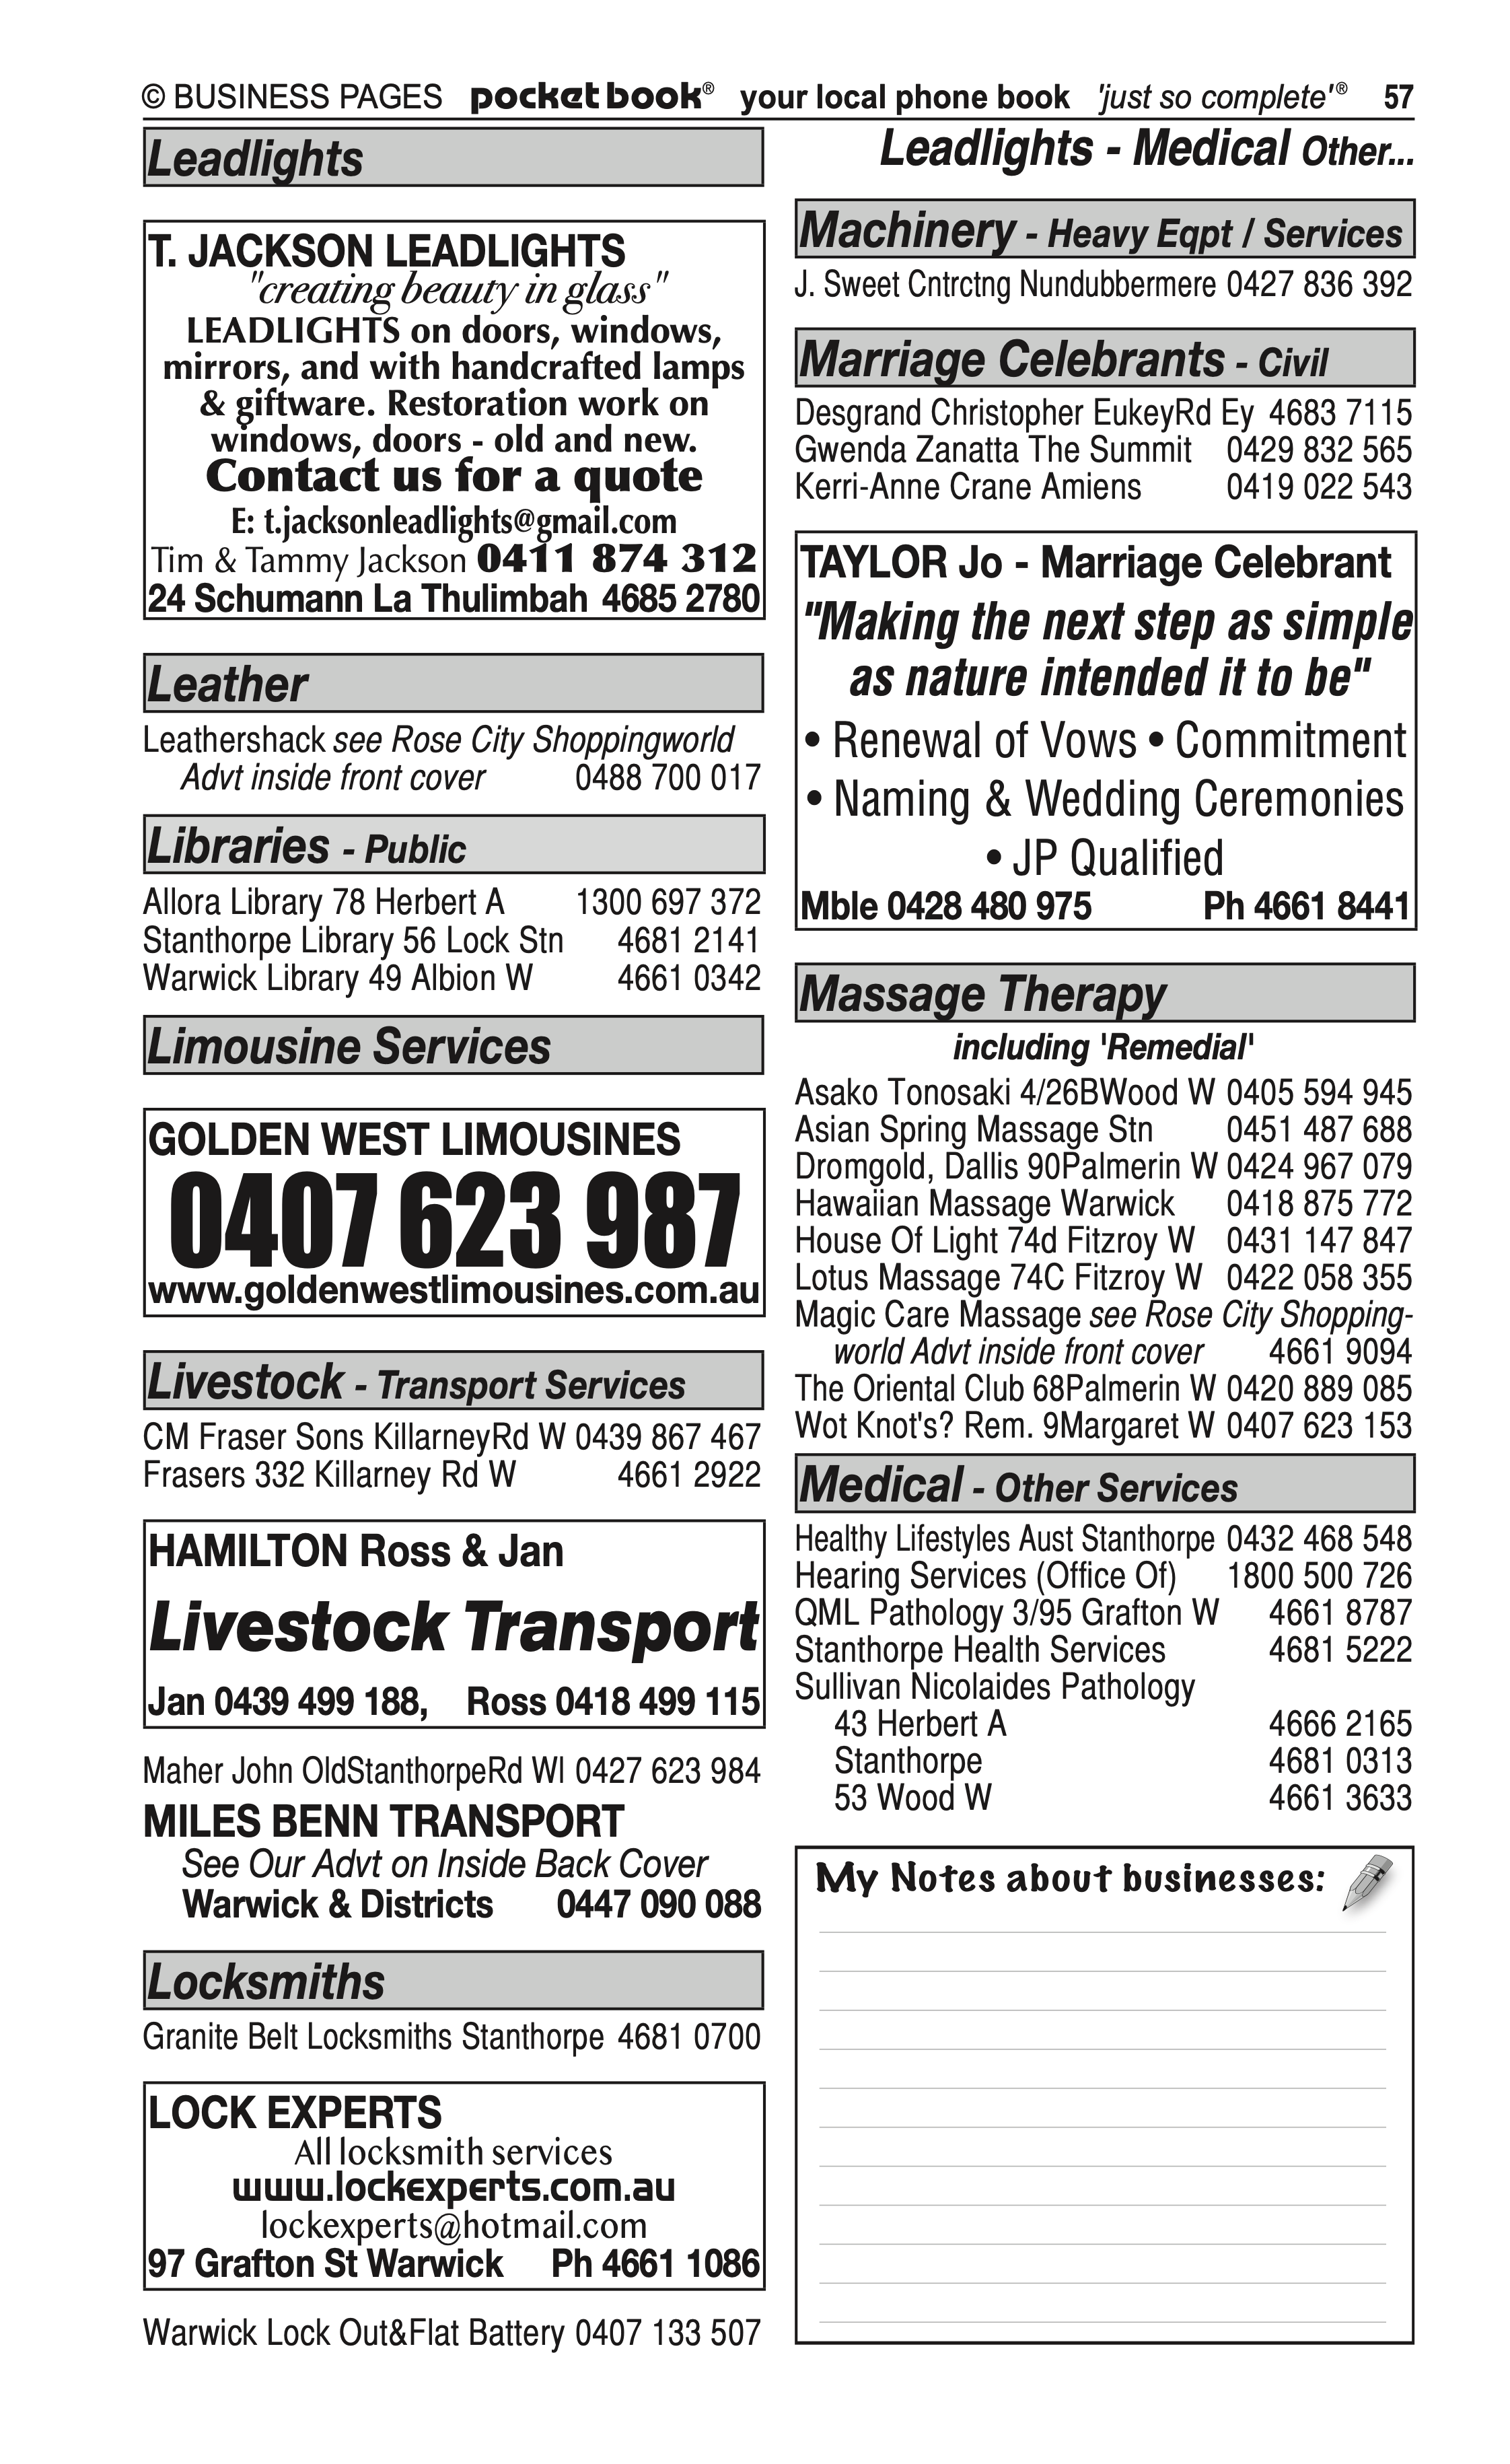 Olsens Produce | Grain & Produce – Retail in Warwick | PBezy Pocket Books local directories - page 57